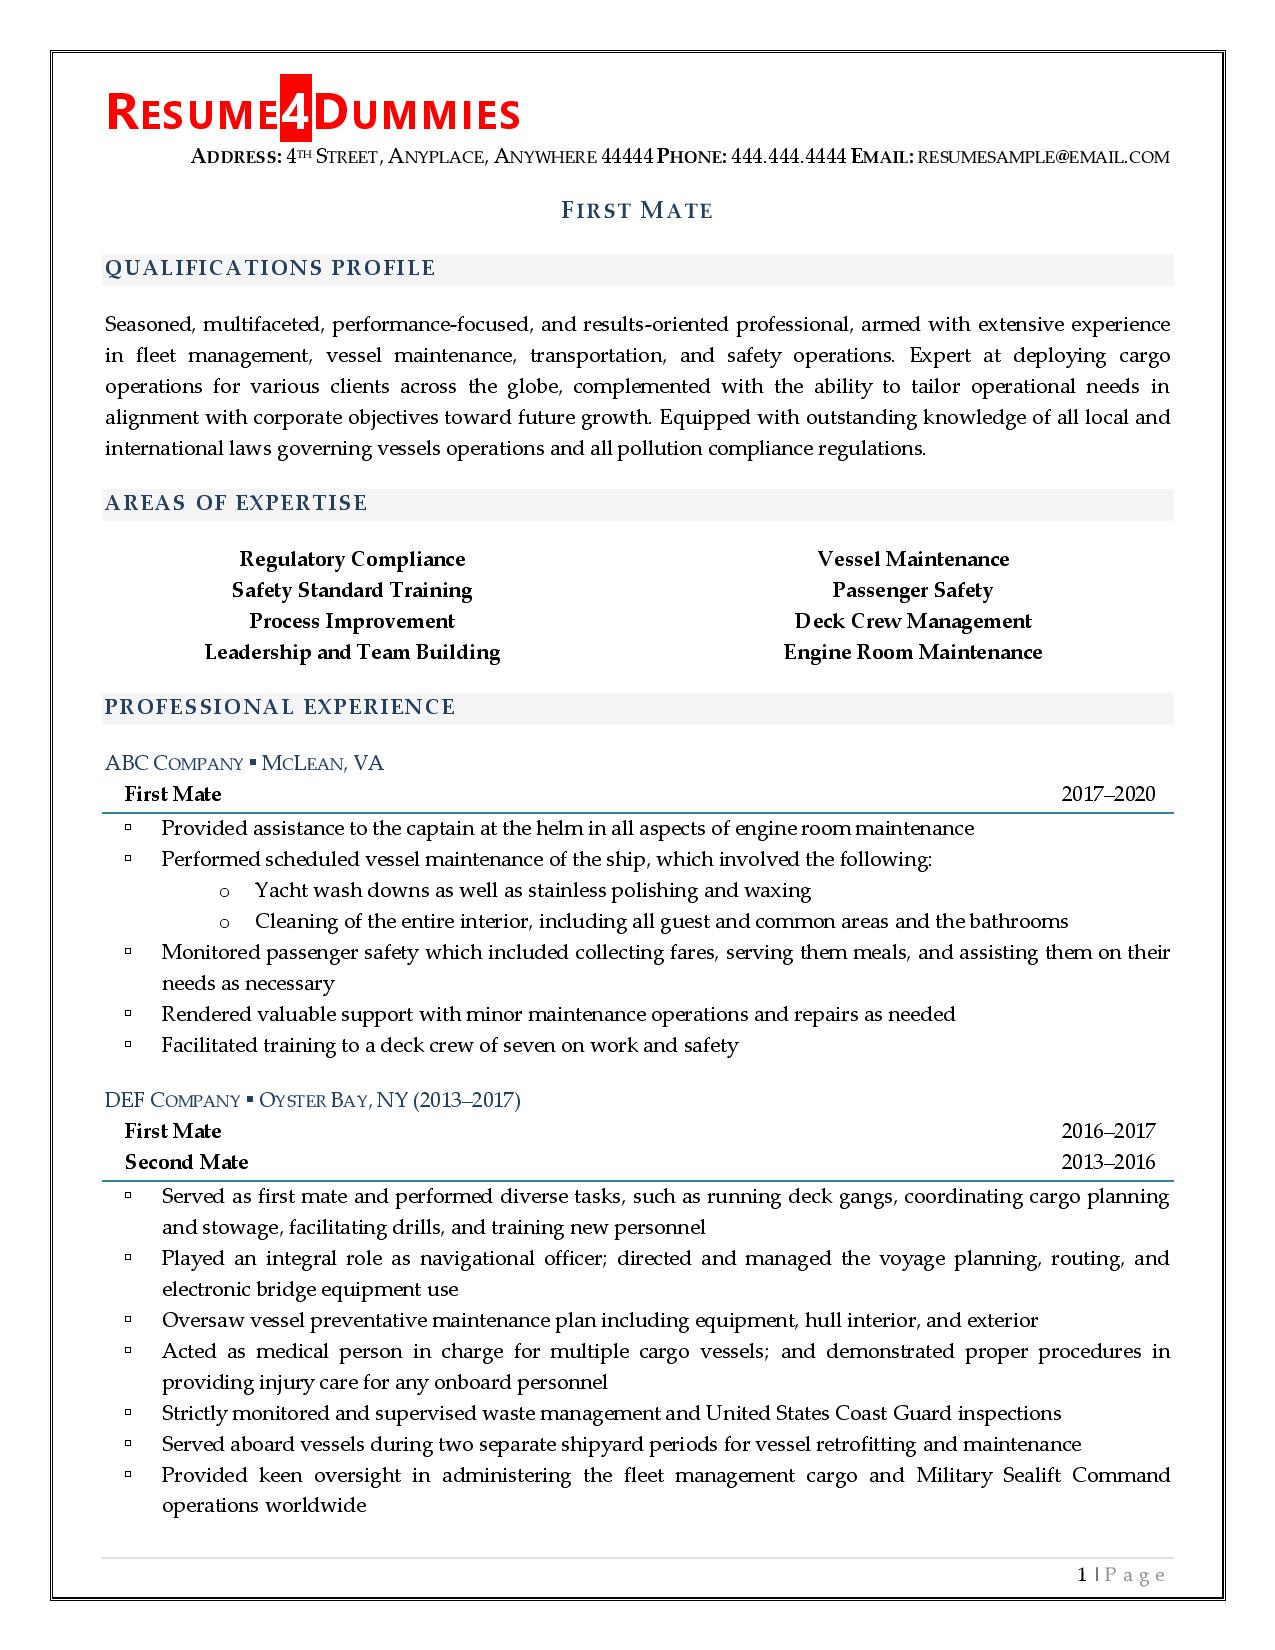 Page one of a first mate resume example